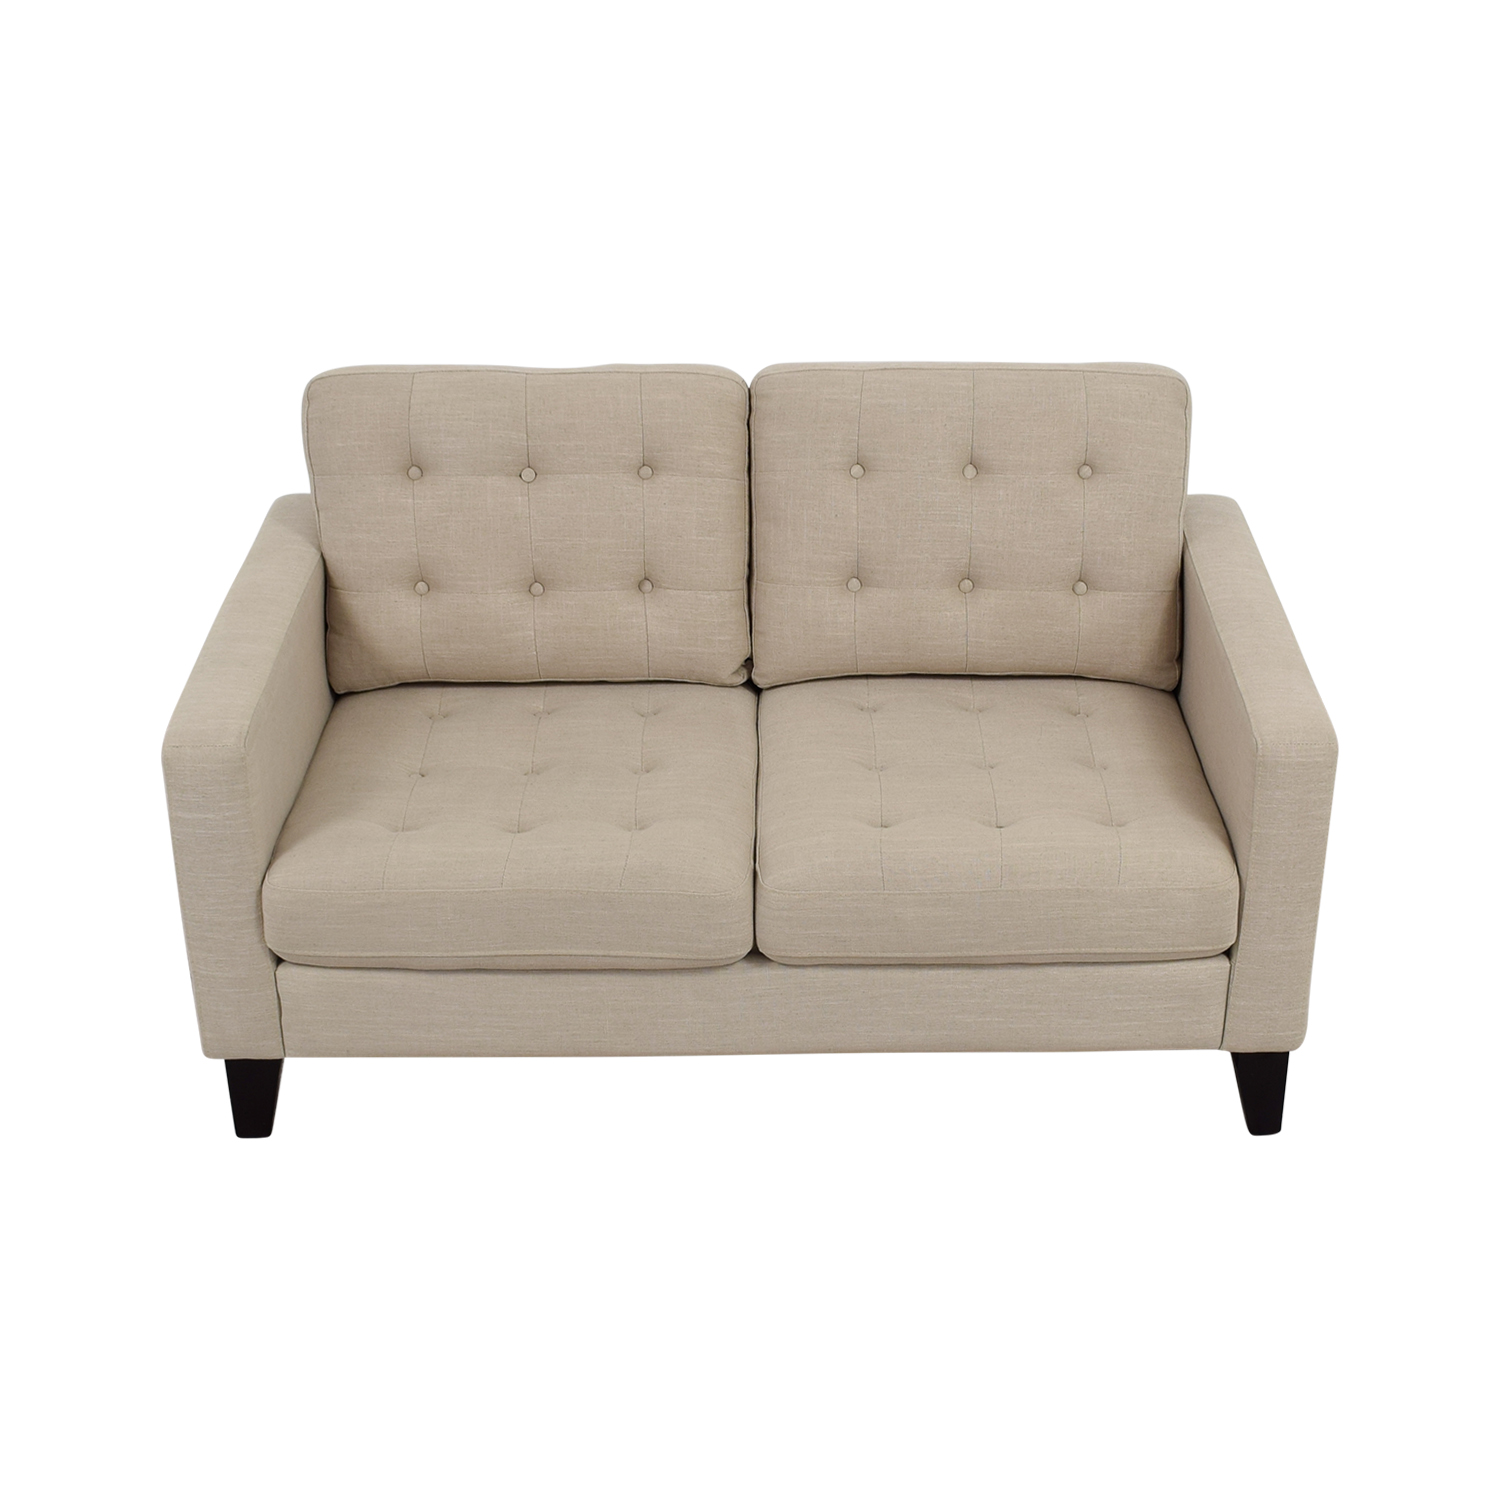 buy Pier 1 Imports Pier 1 Imports Nyle Putty Tufted Loveseat online